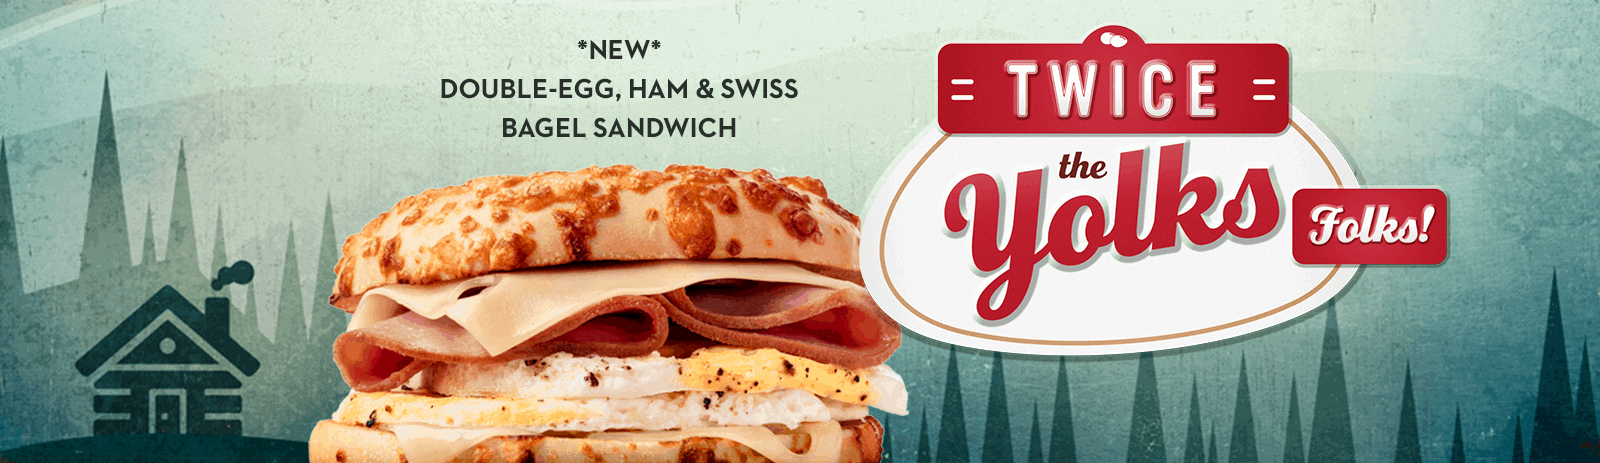 New double-egg, ham and swiss bagel sandwich